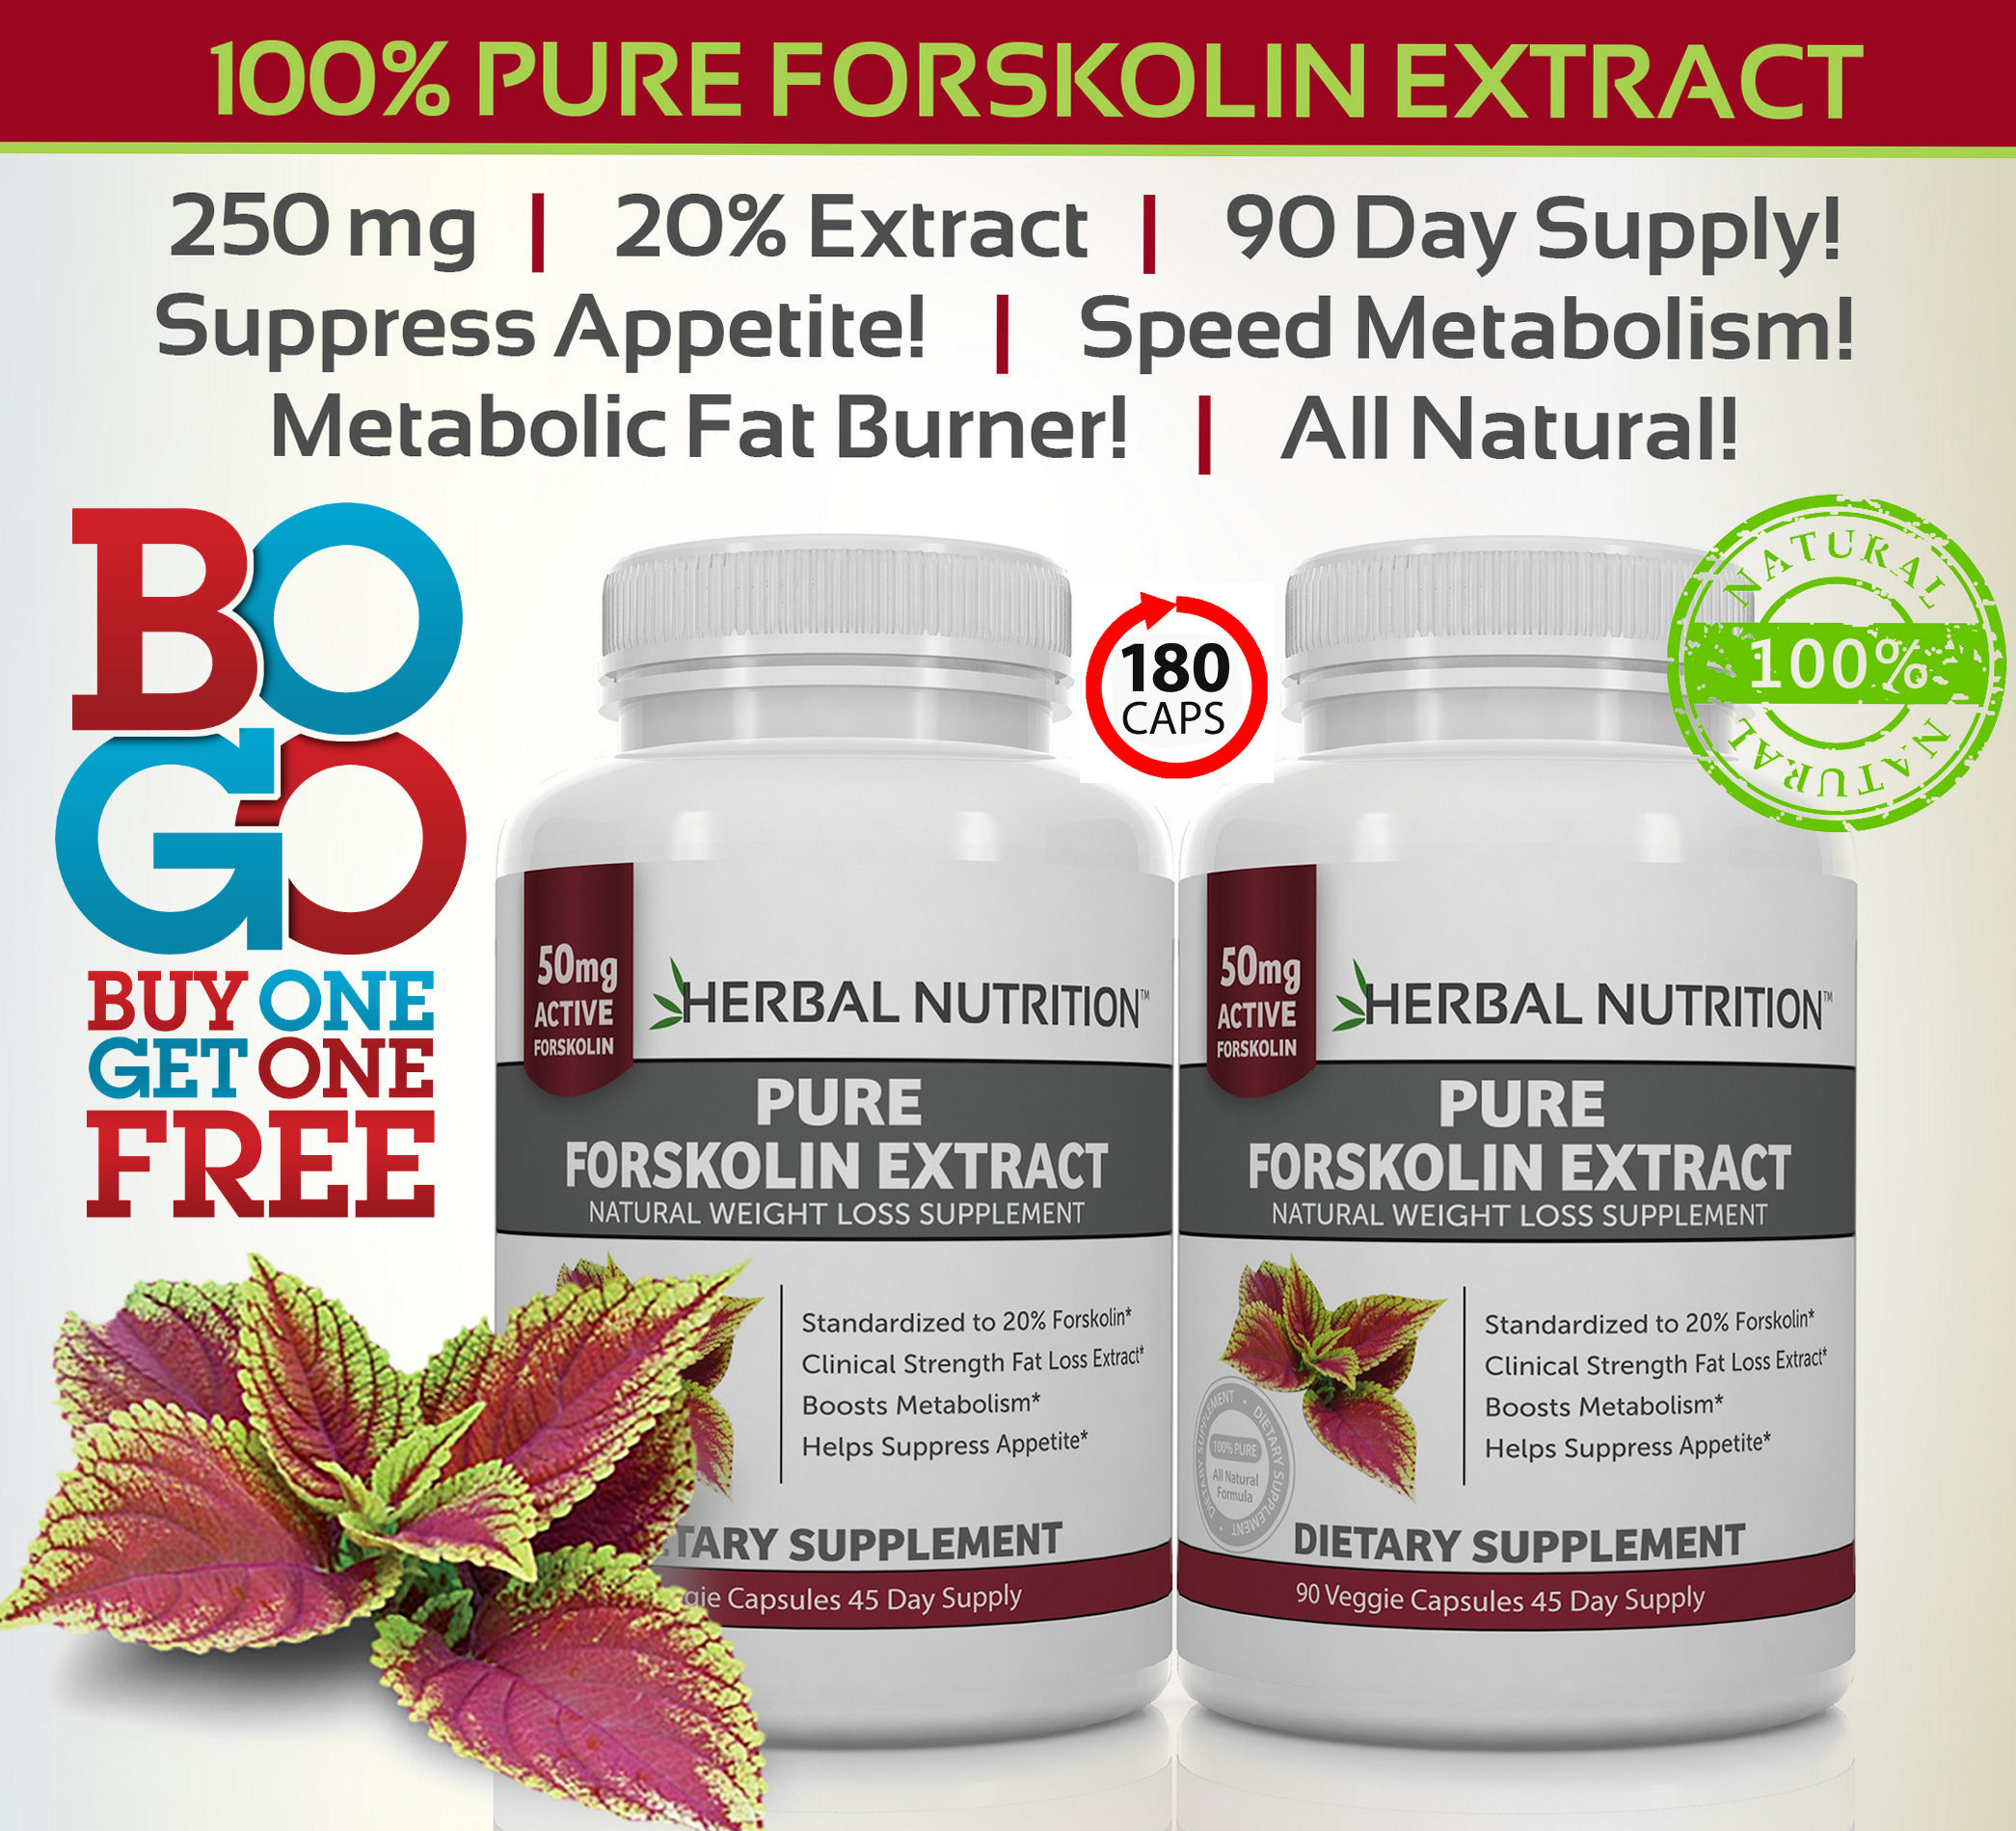 Forskolin Extract Two Bottles Graphic